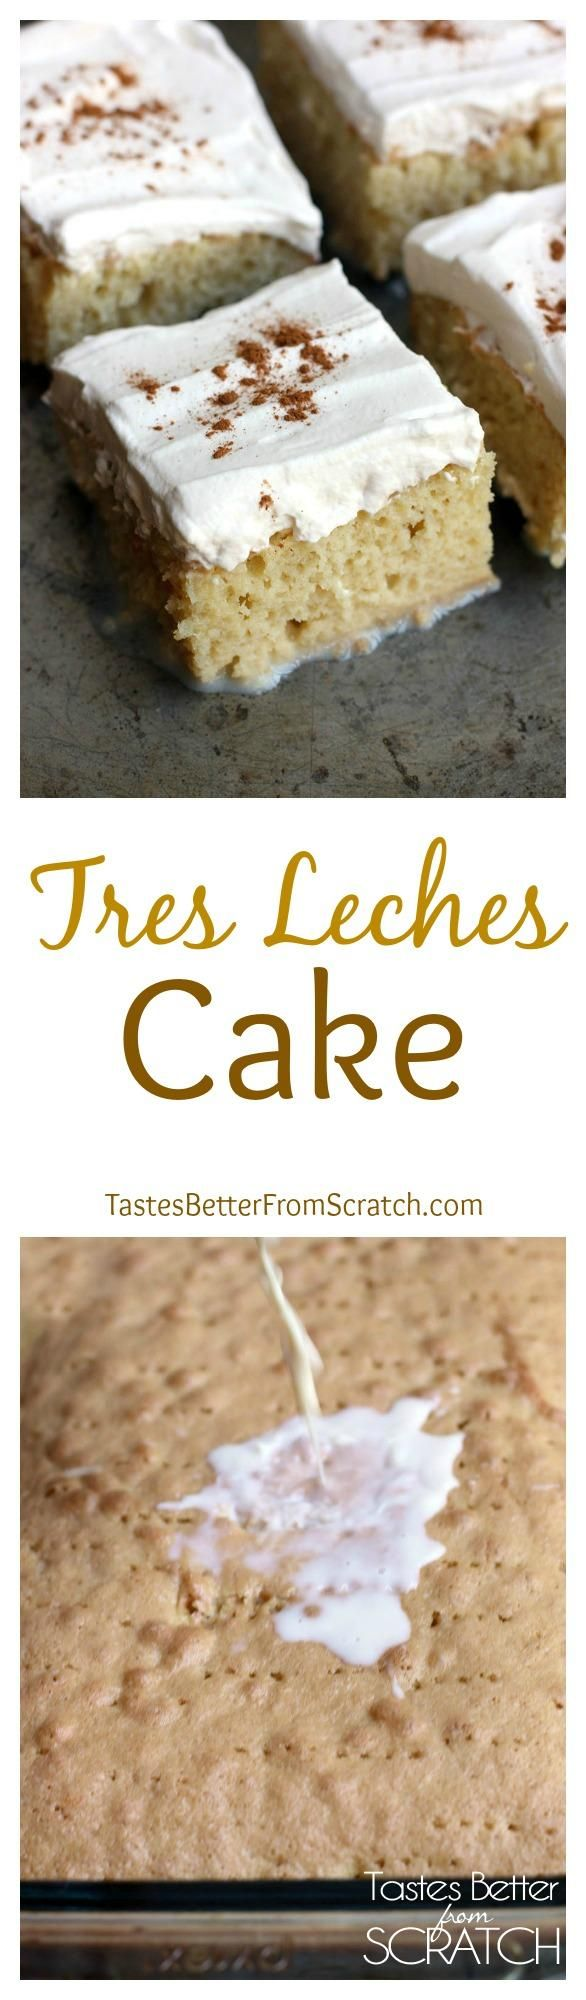 Tres Leches Cake on TastesBetterFromScratch.com